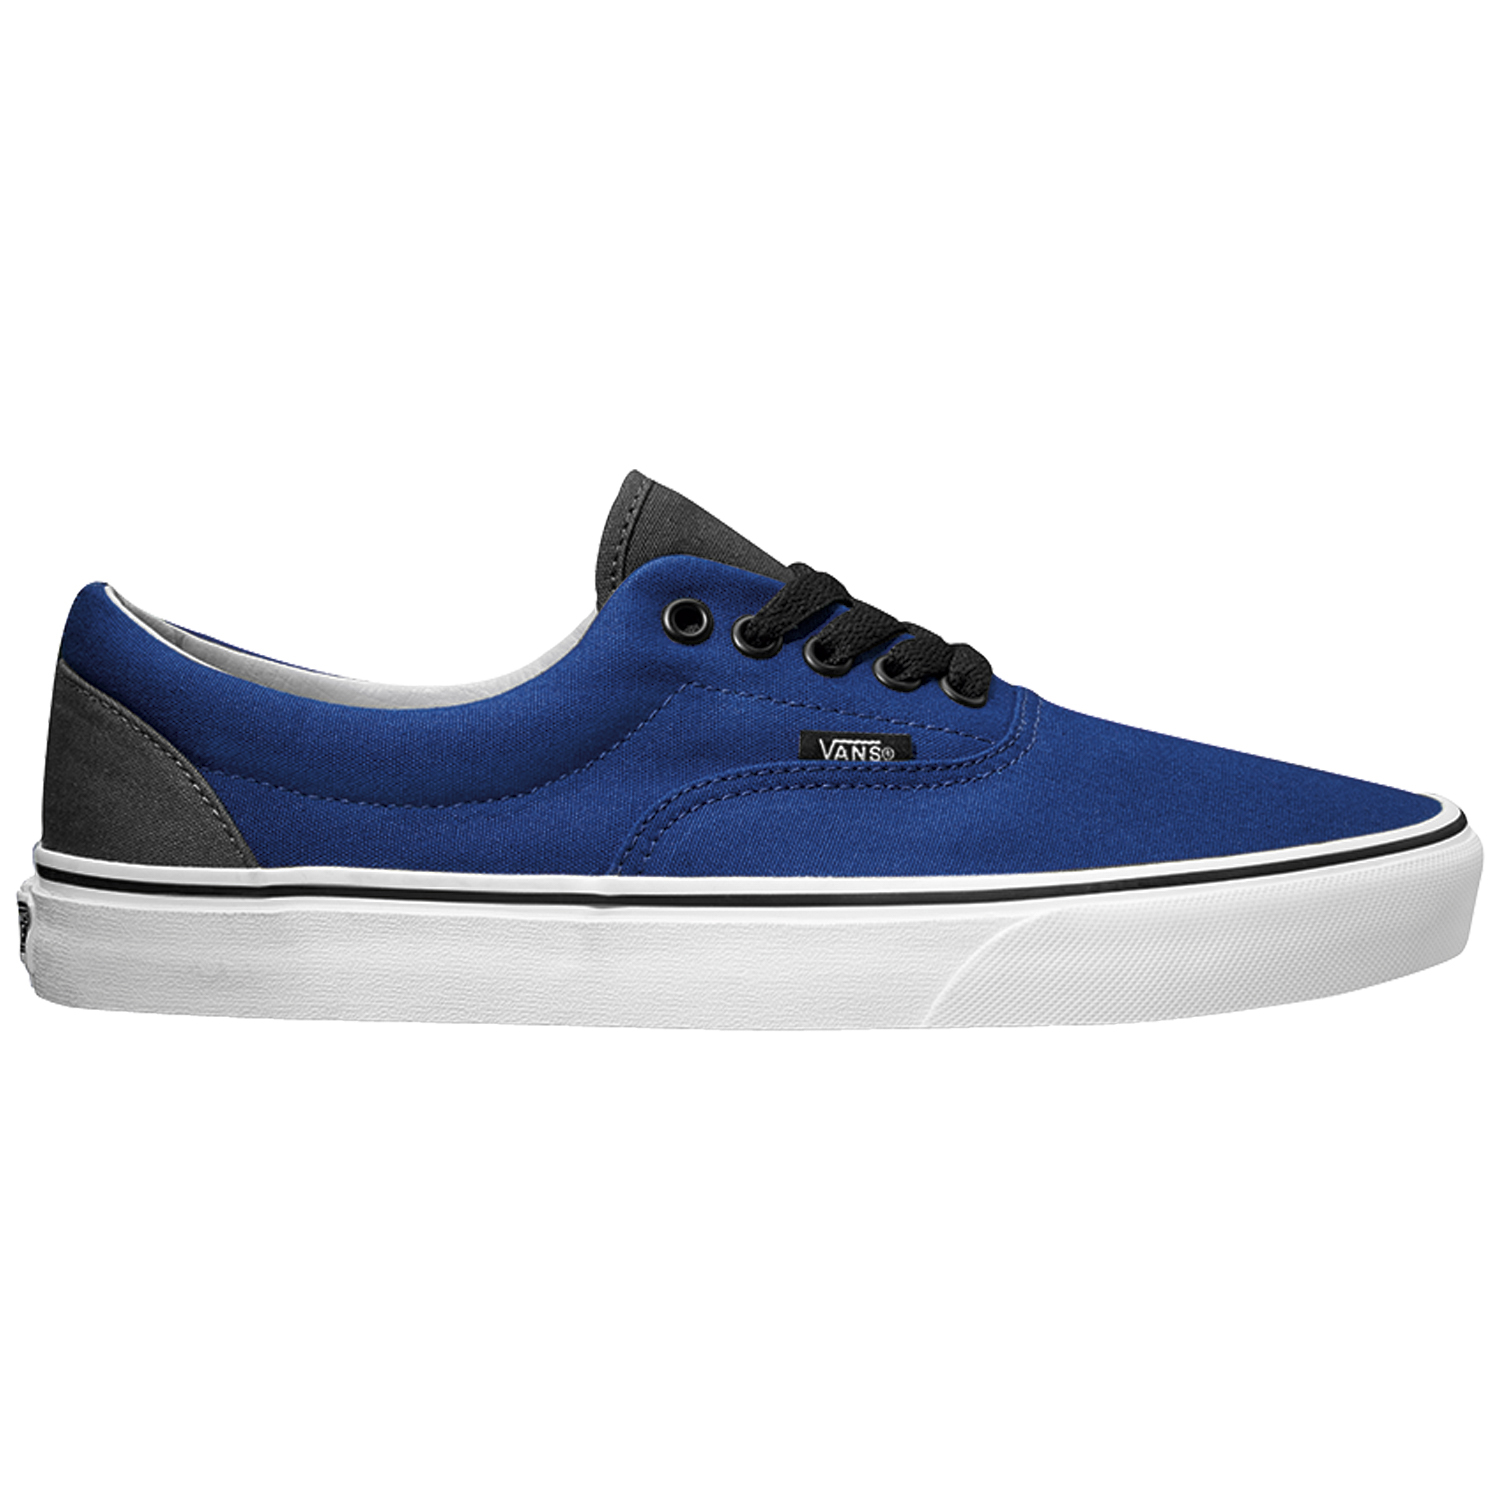 vans-era-pop-sodalite-blue-parisian-night-99-90